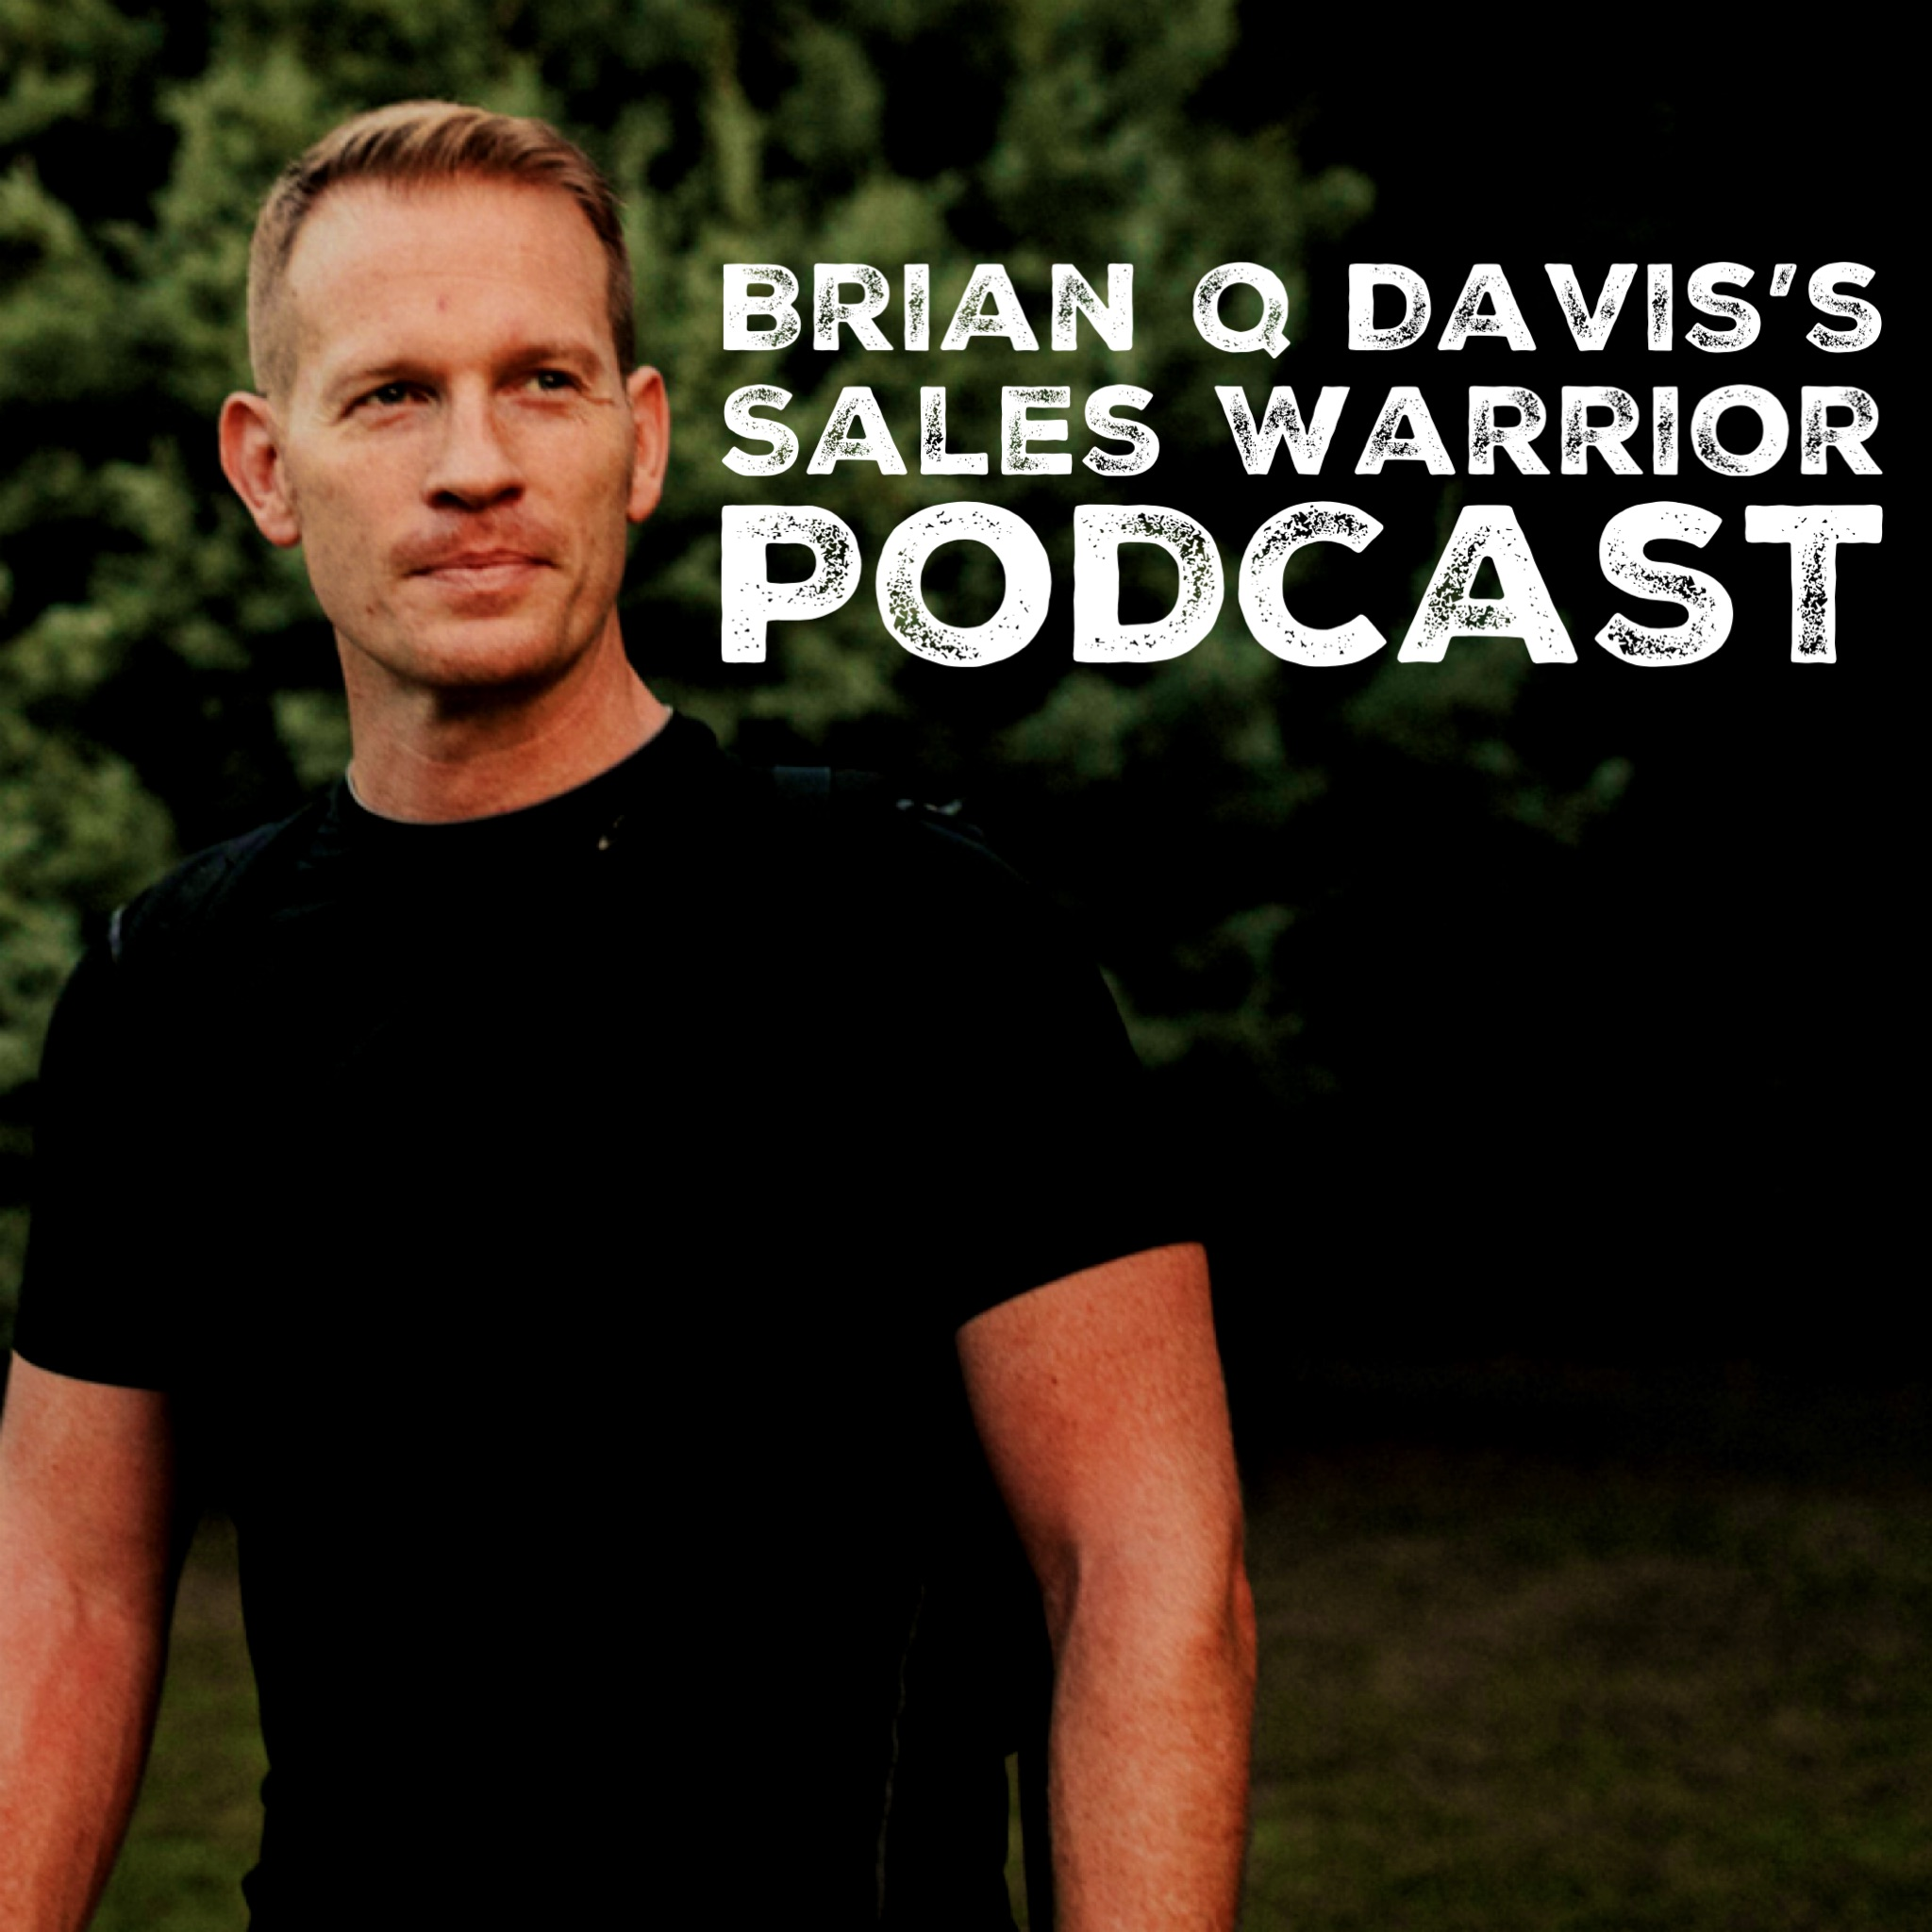 The Sales Warrior Podcast